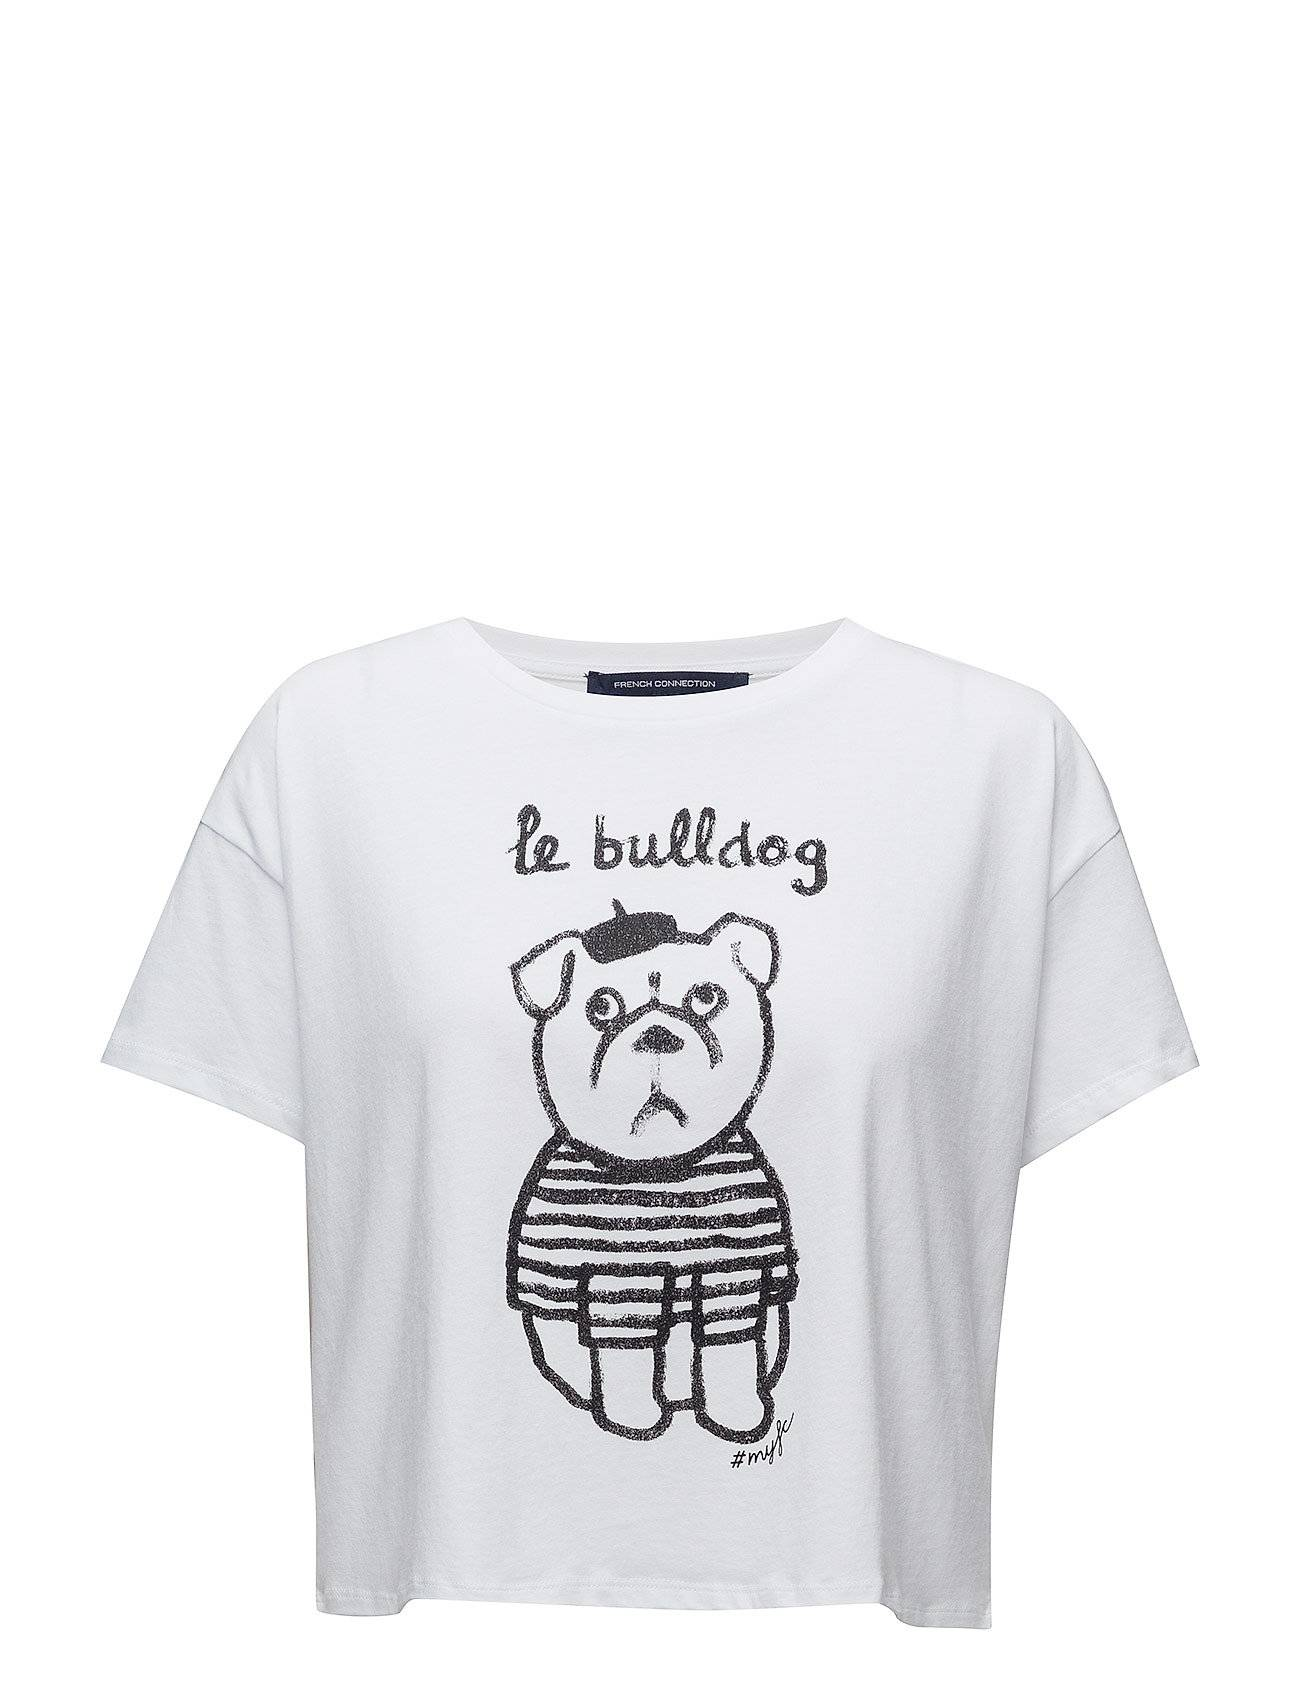 French Connection Le Bulldog Tee (The Bulldog)